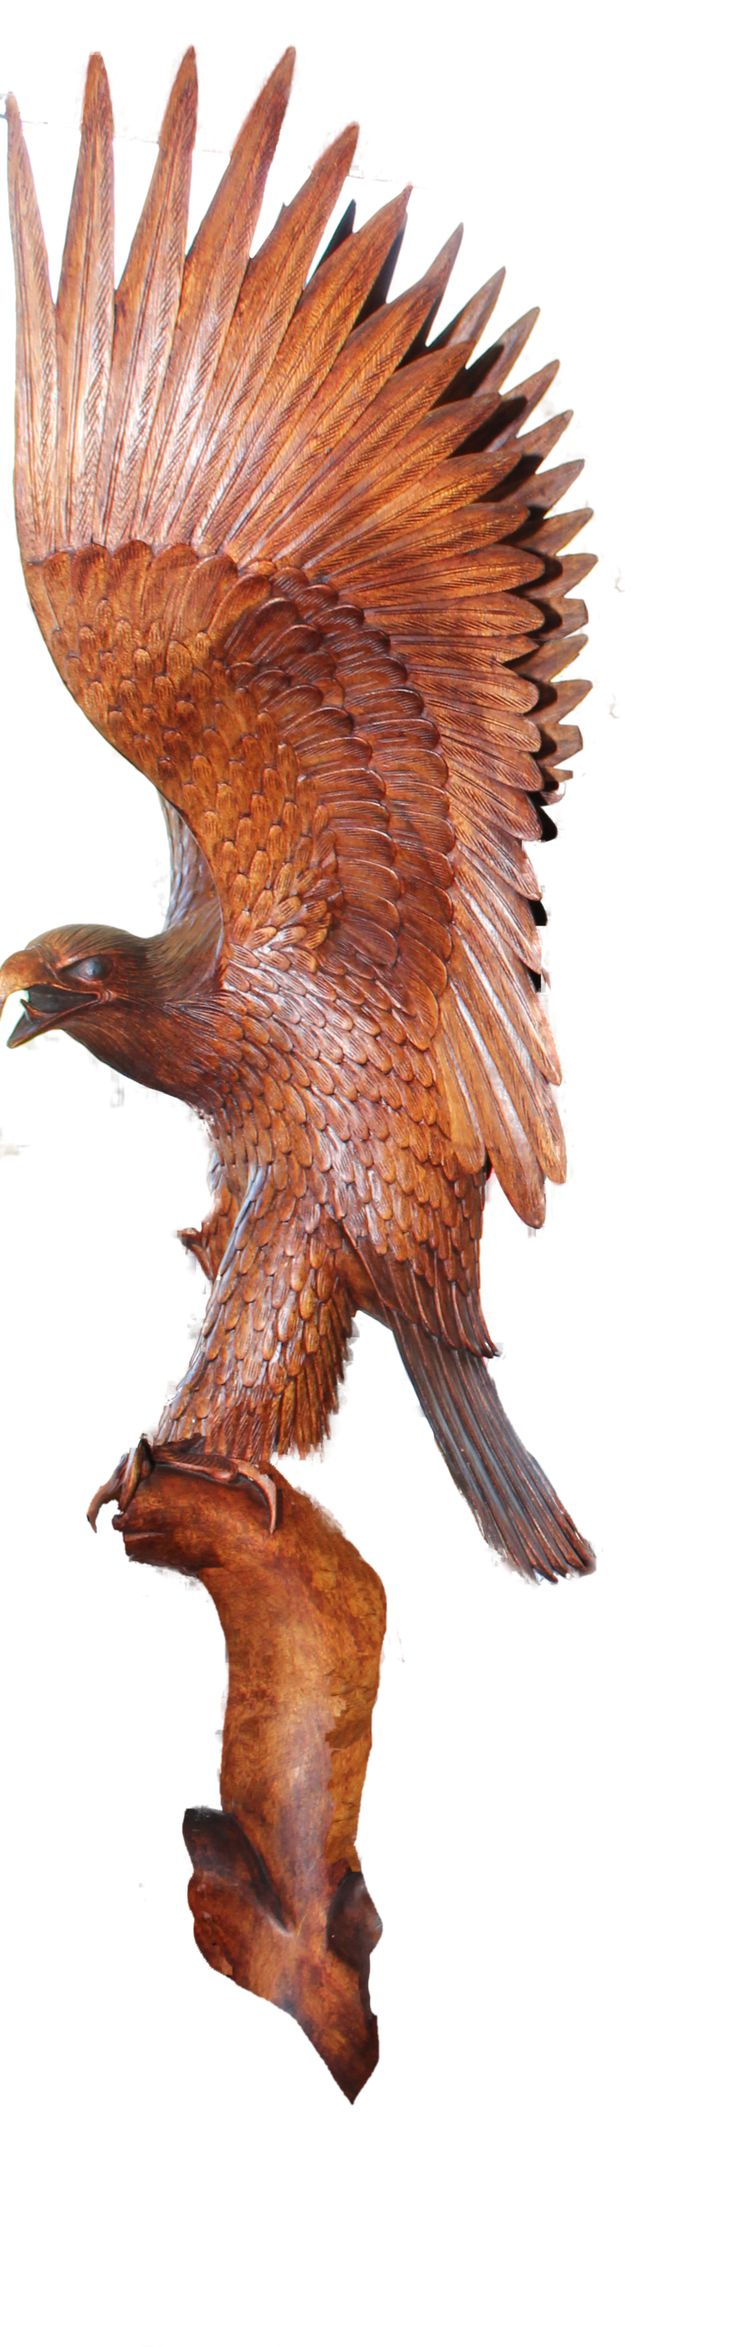 wood carvings of eagle heads | Eagle Wood Carving by mysticmorning